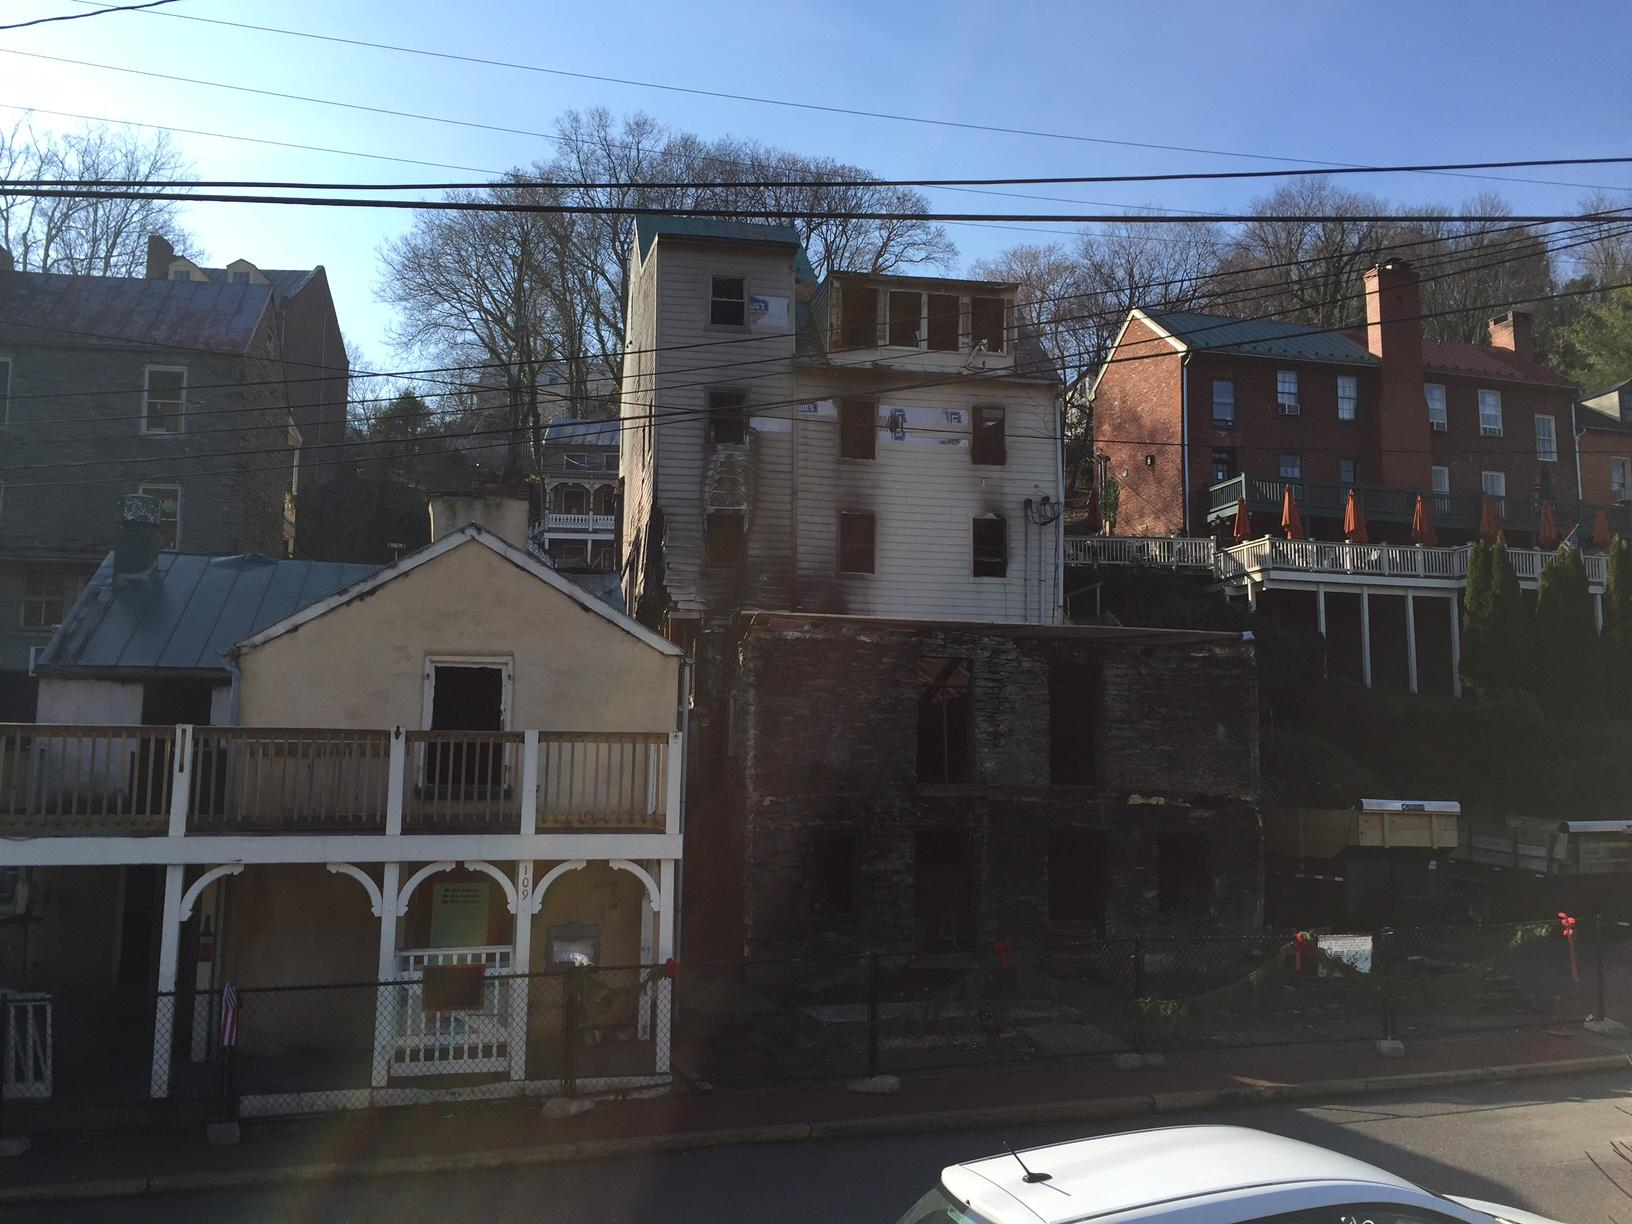 Harpers Ferry Making Progress in Pricy Rebuild | West ...